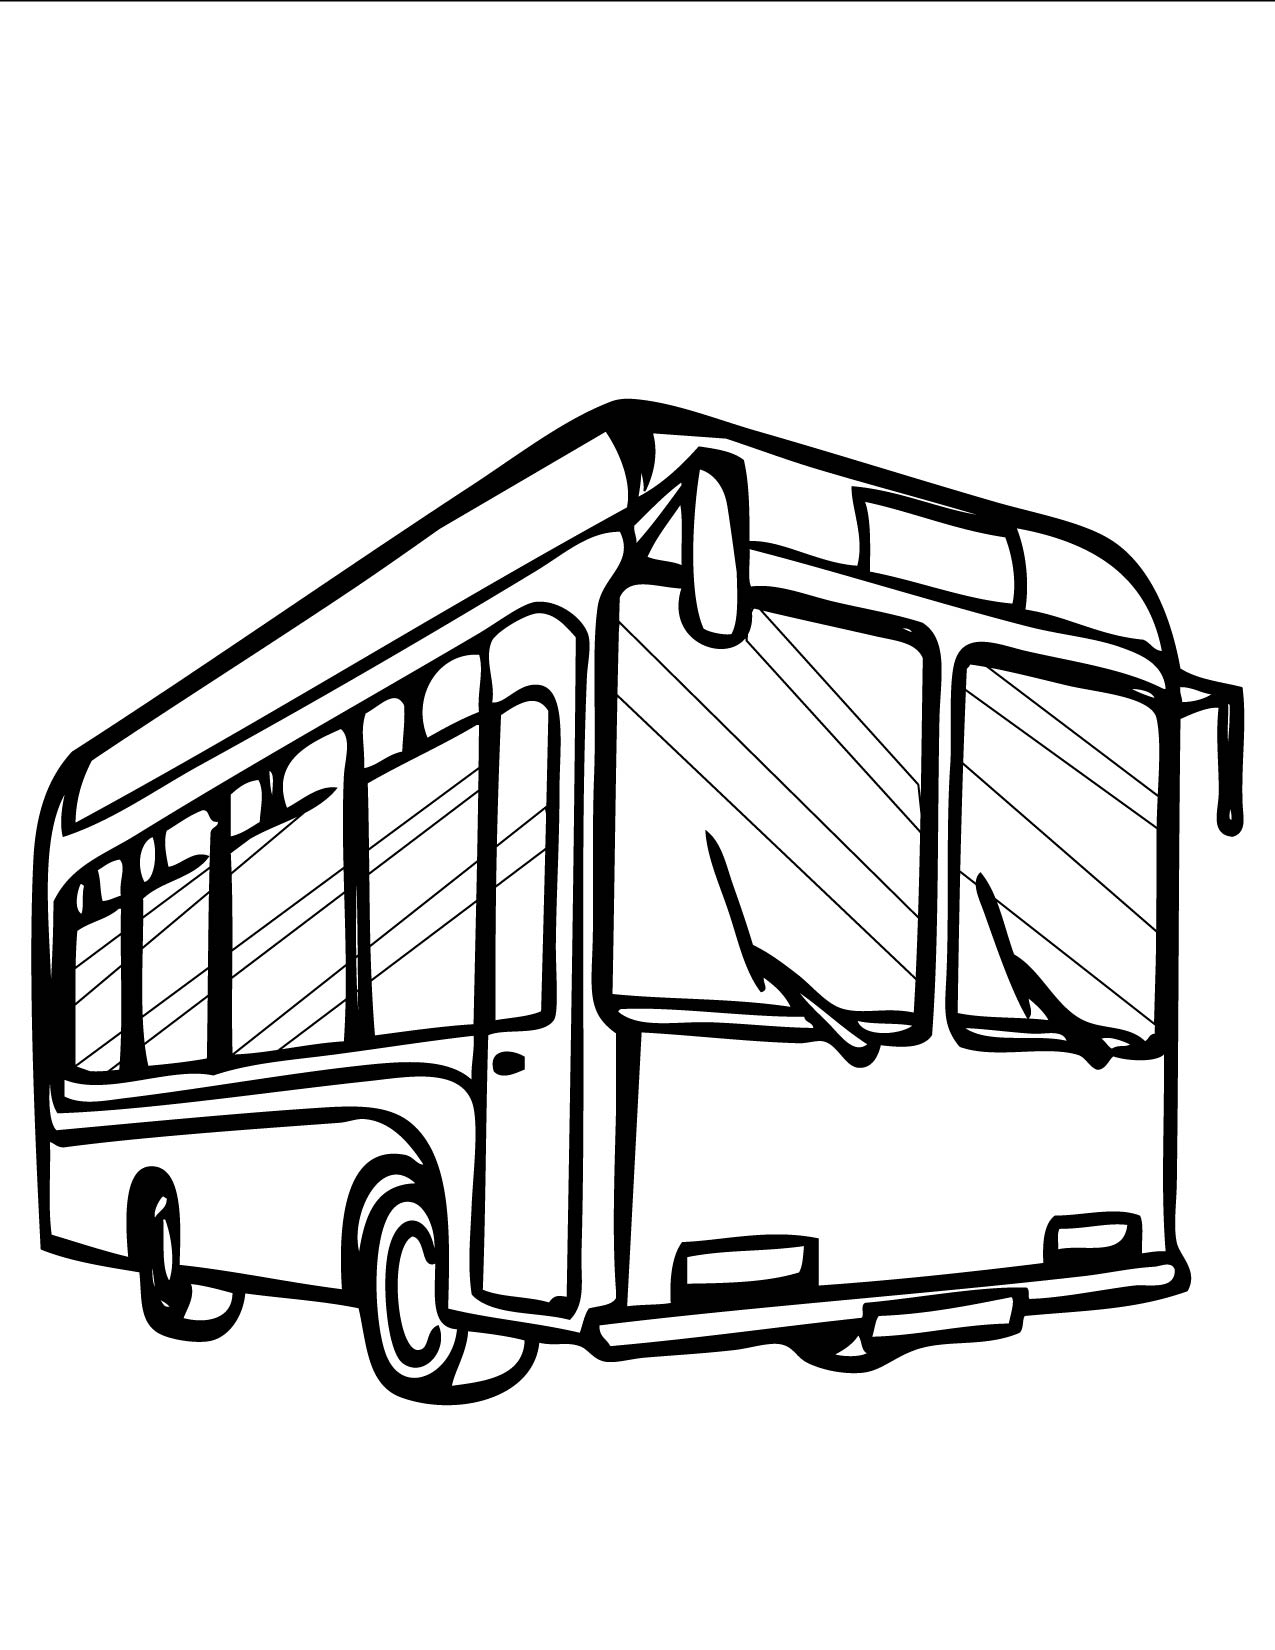 1275x1650 B For Bus Coloring Pages For School Going Kids Download